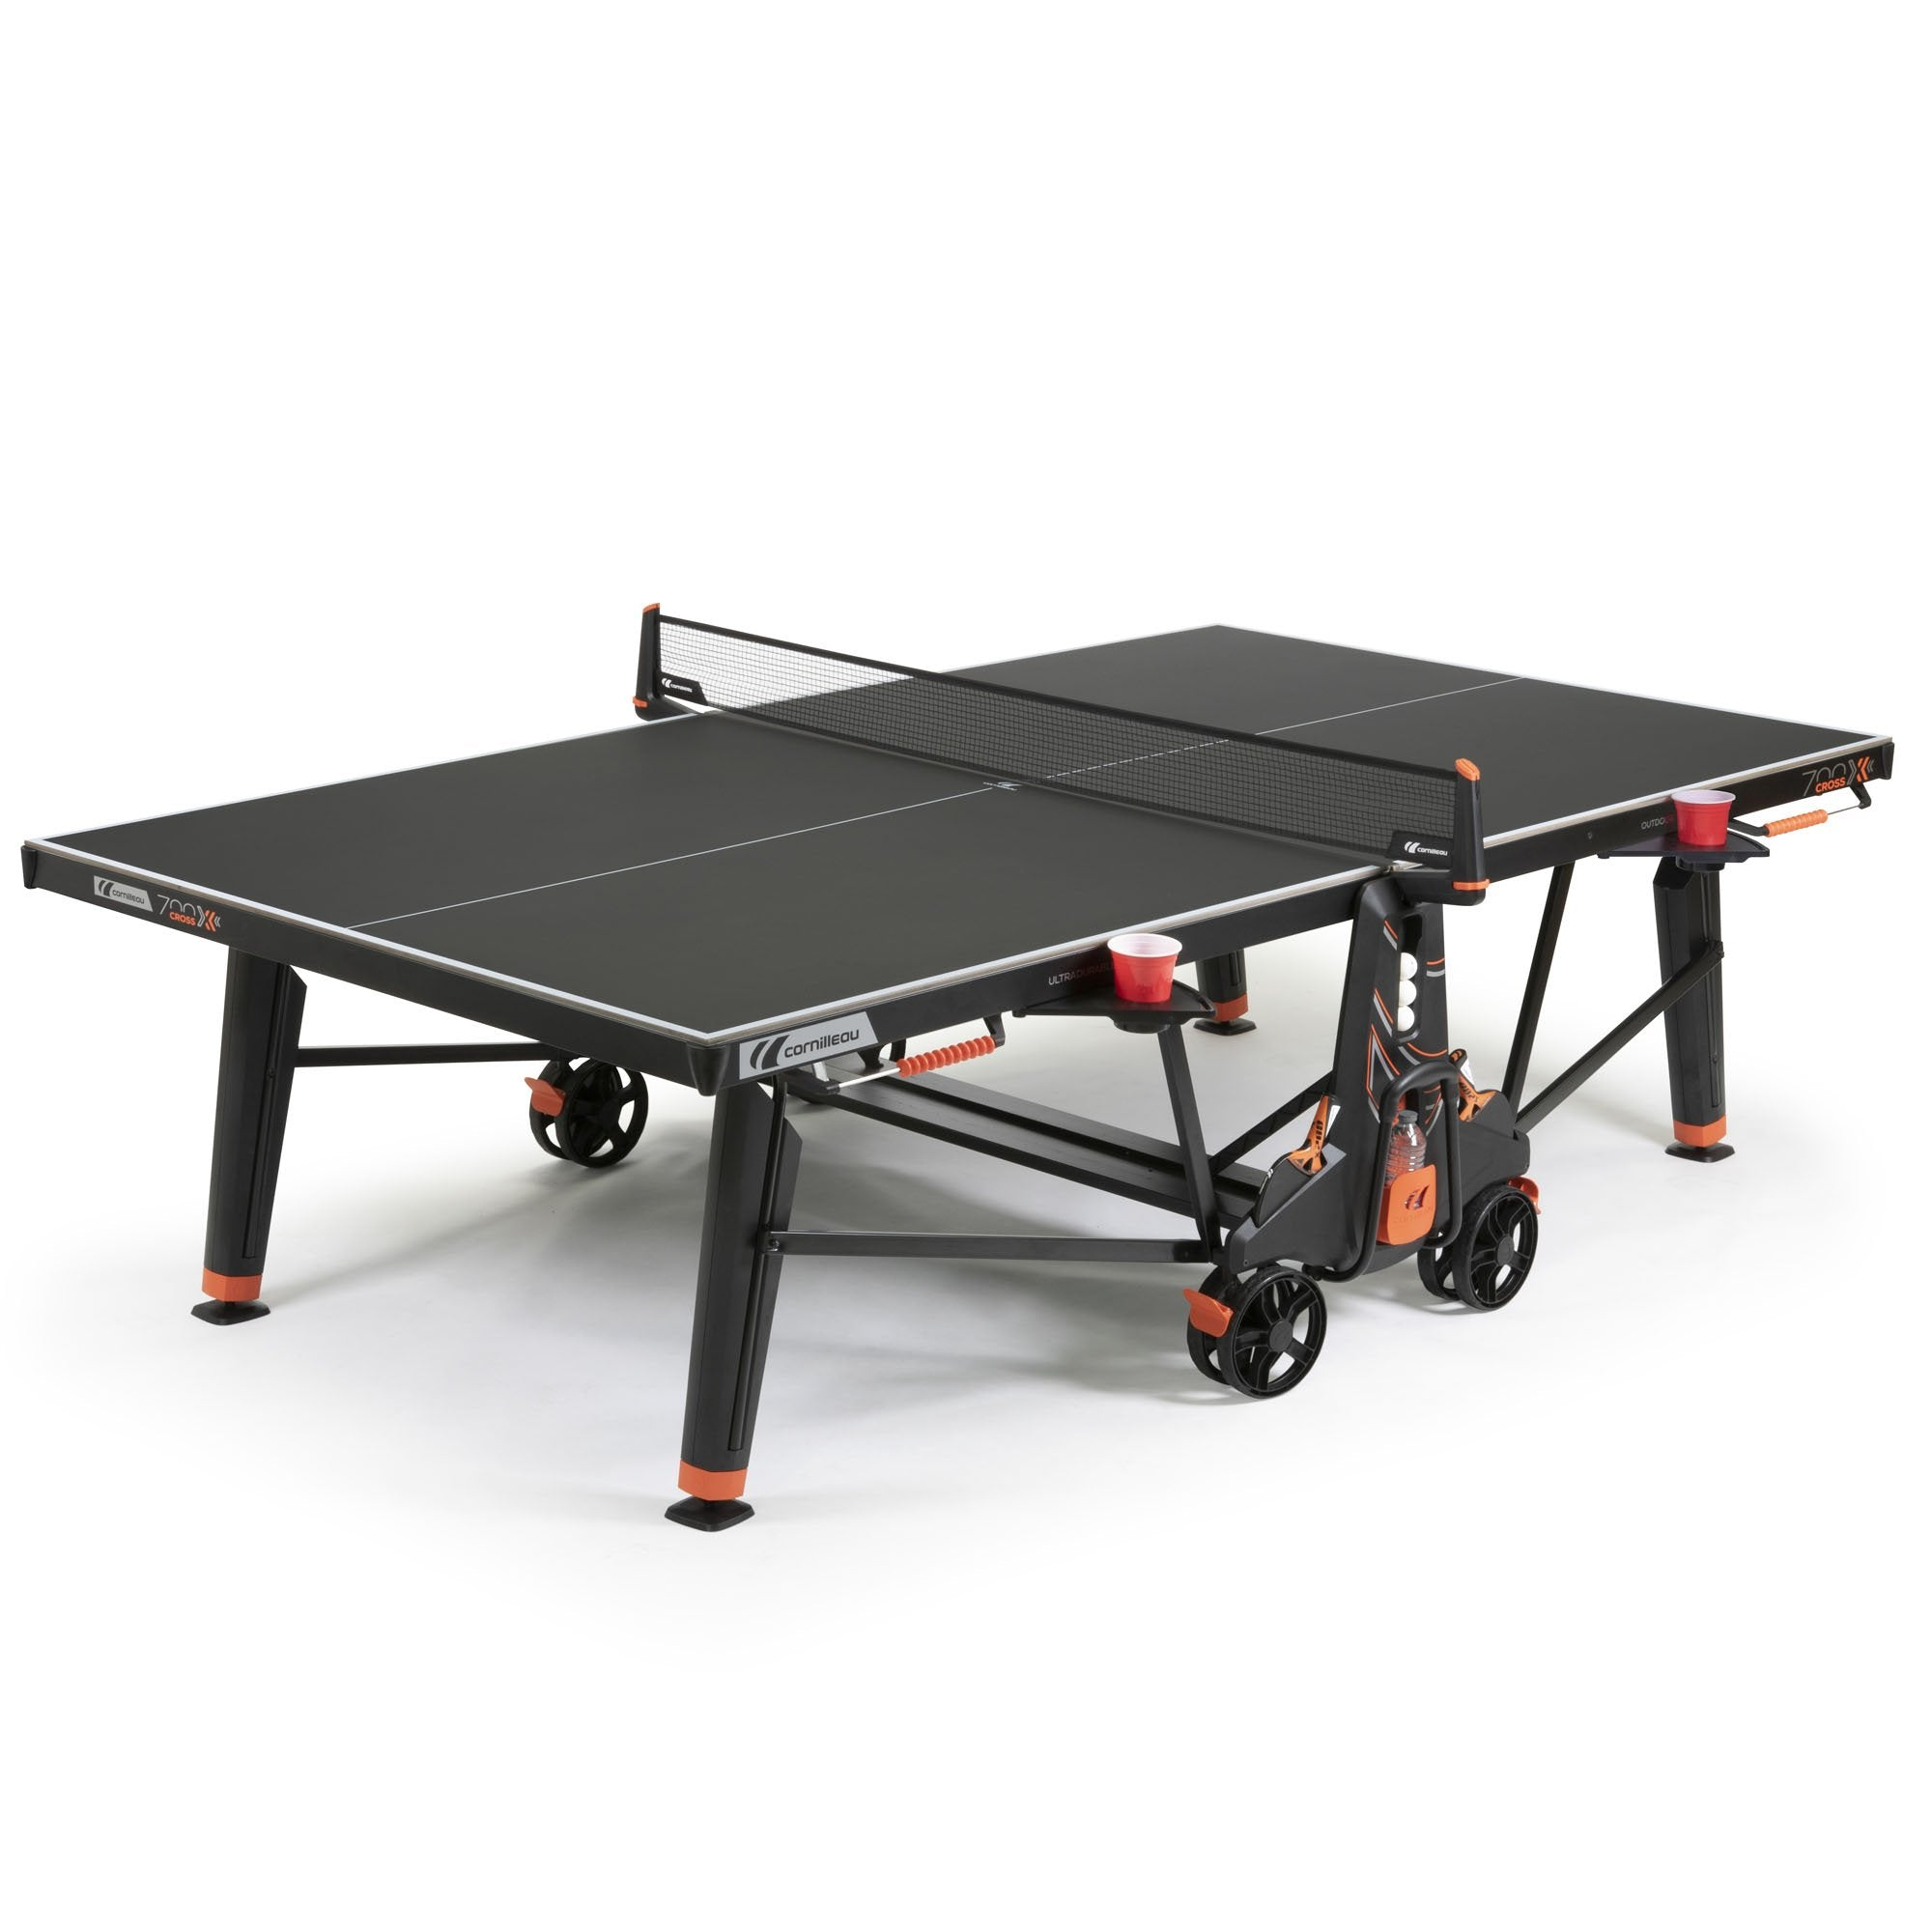 Cornilleau Performance 700X Rollaway Outdoor Table Tennis Table